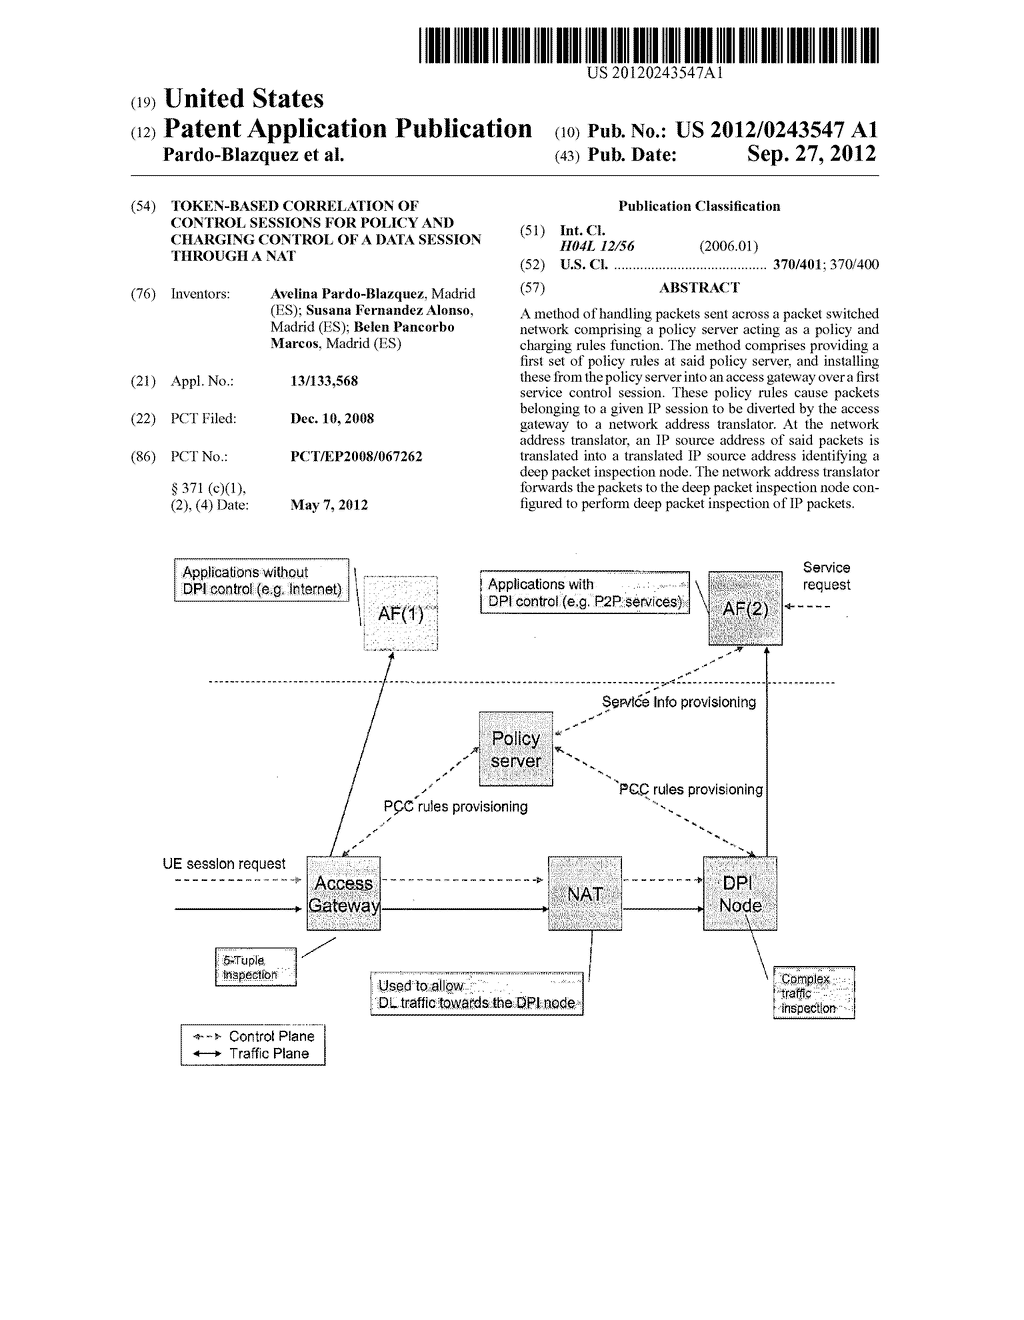 TOKEN-BASED CORRELATION OF CONTROL SESSIONS FOR POLICY AND CHARGING     CONTROL OF A DATA SESSION THROUGH A NAT - diagram, schematic, and image 01